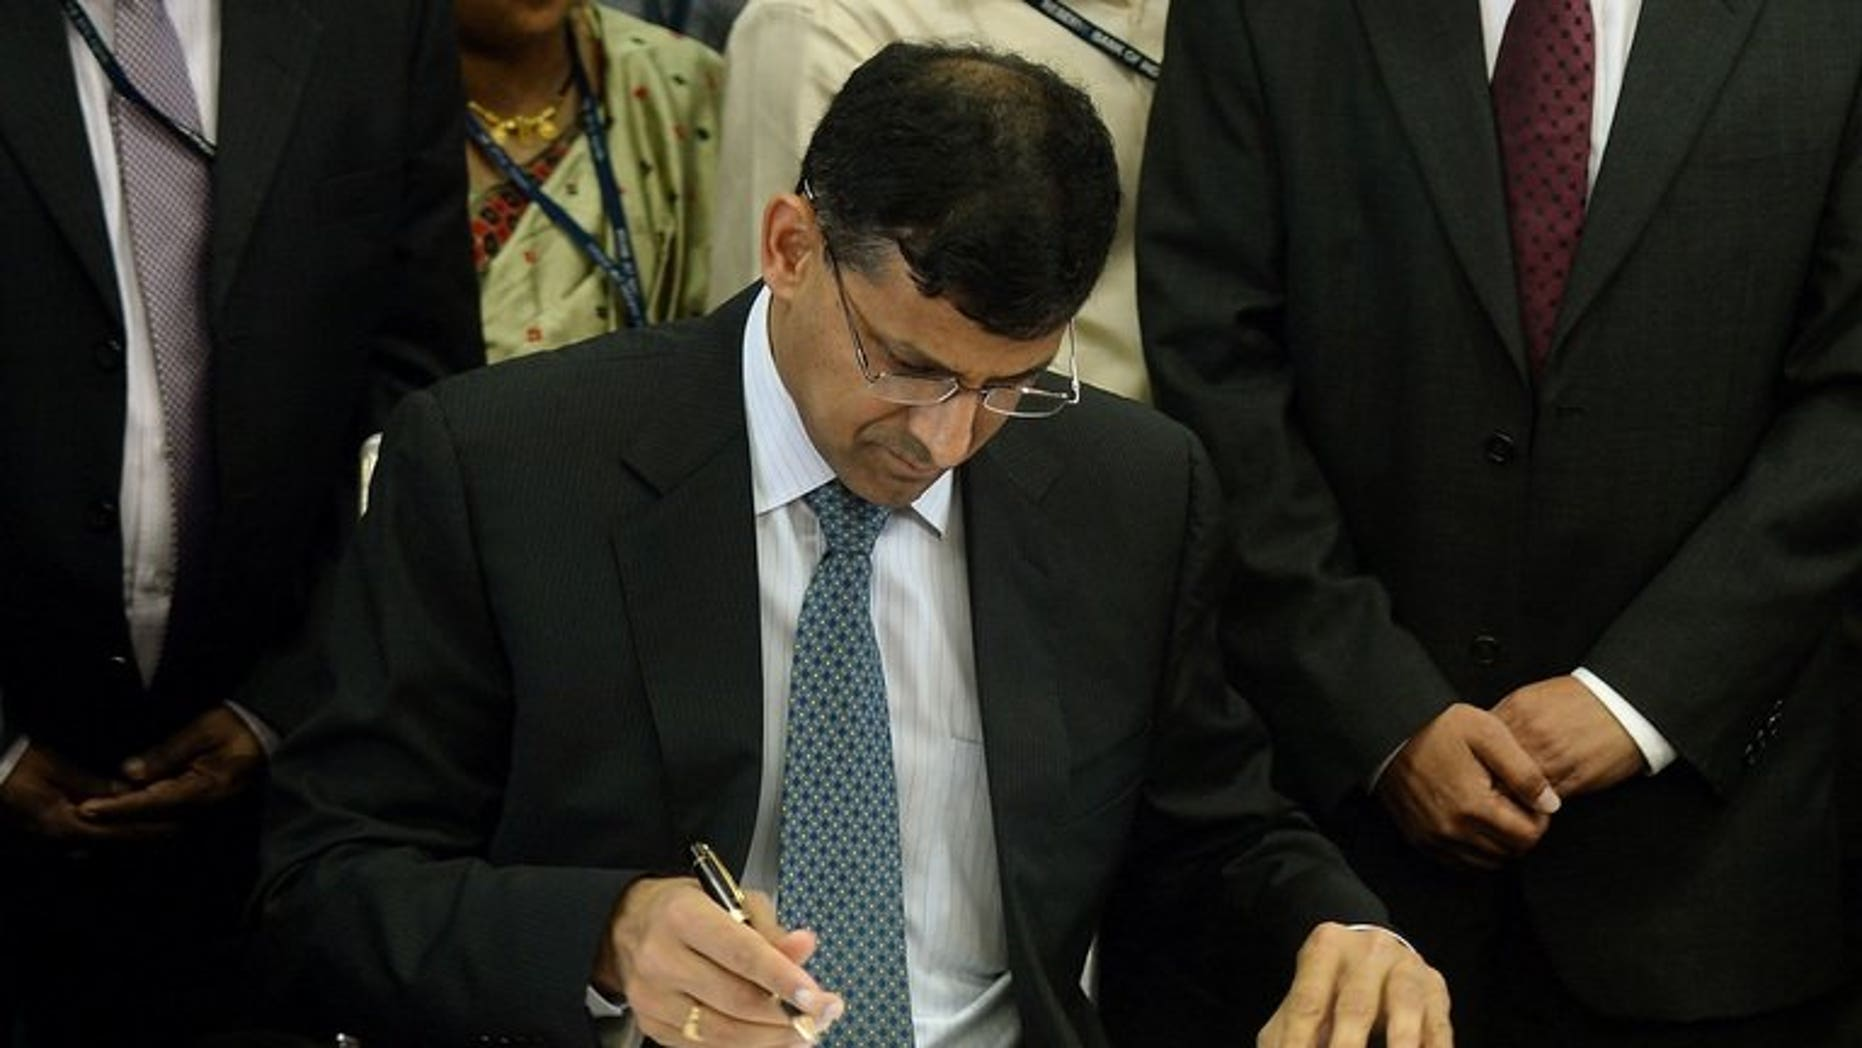 Reserve Bank of India's (RBI) newly appointed governor Raghuram Rajan signs official papers during the hand over ceremony at the RBI headquarters in Mumbai on September 4, 2013.